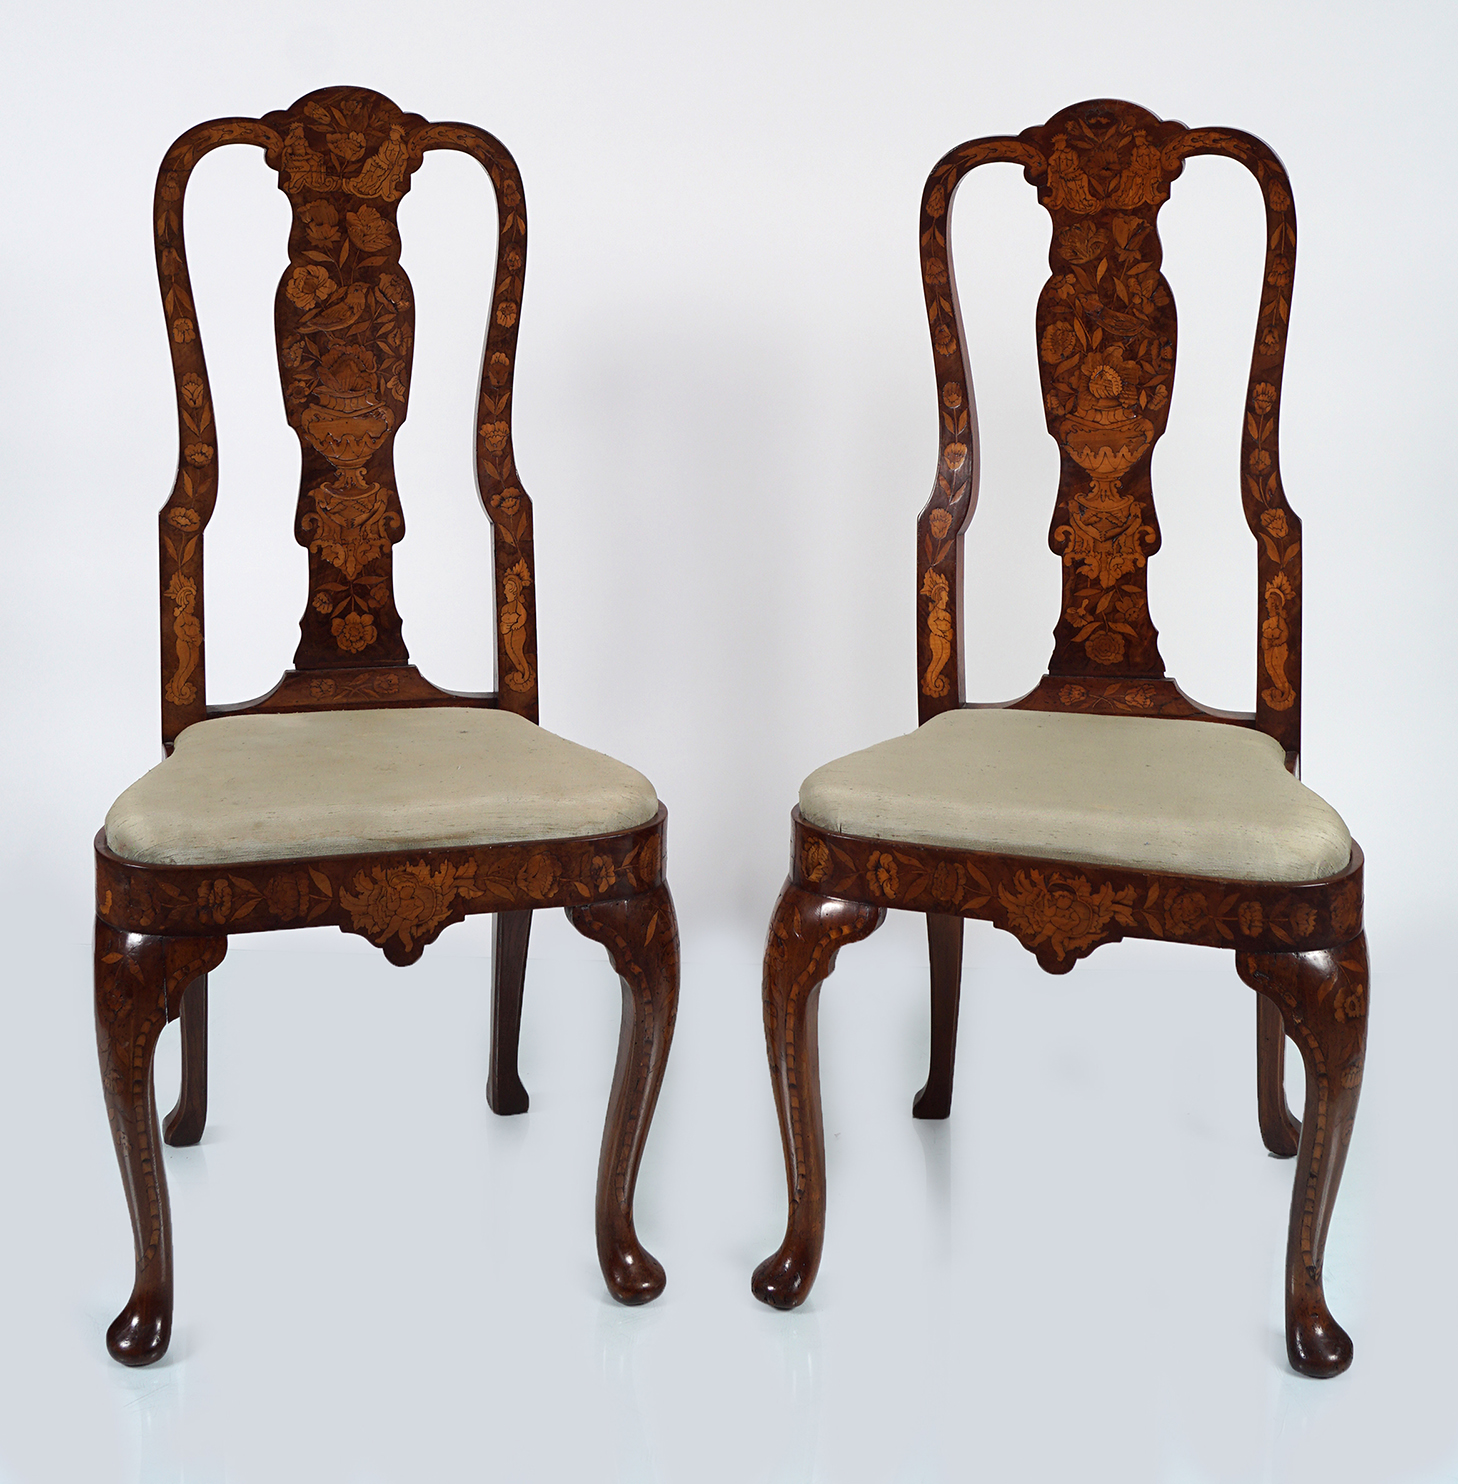 PAIR OF 19TH-CENTURY DUTCH MARQUETRY CHAIRS